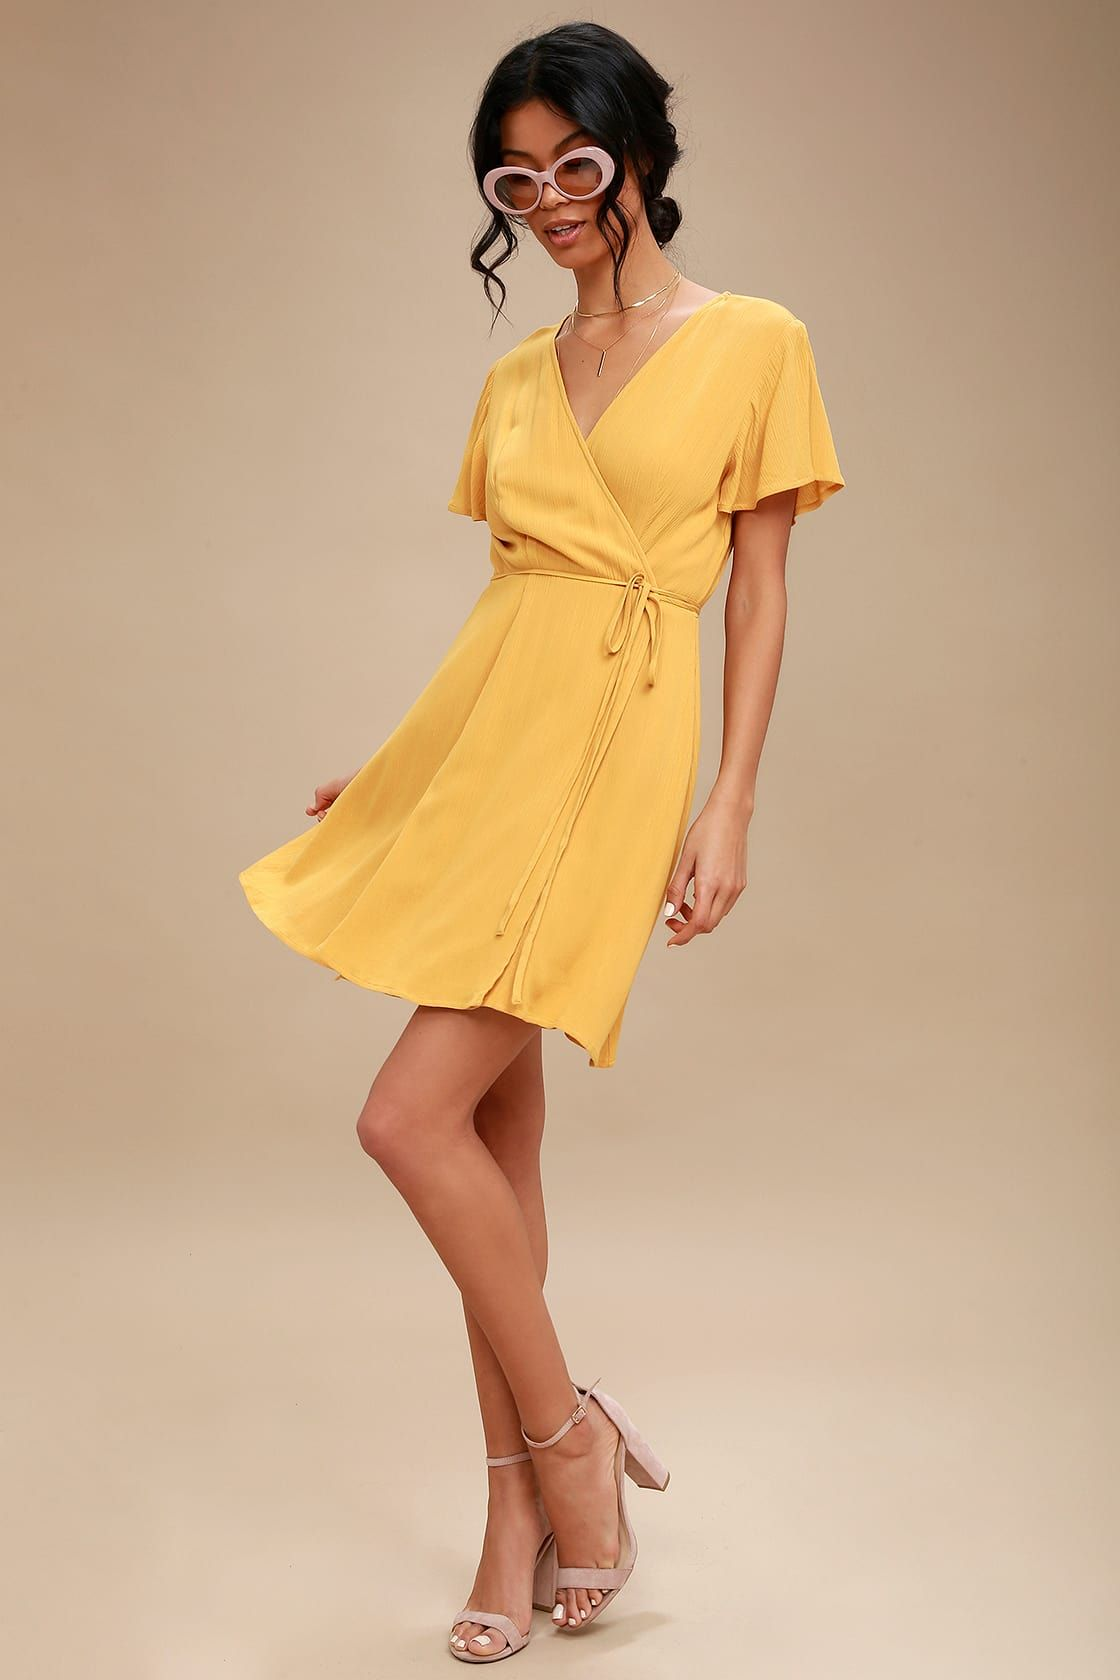 22fb697f976 Lulus | Harbor Point Mustard Yellow Wrap Dress | Size Large | 100 ...